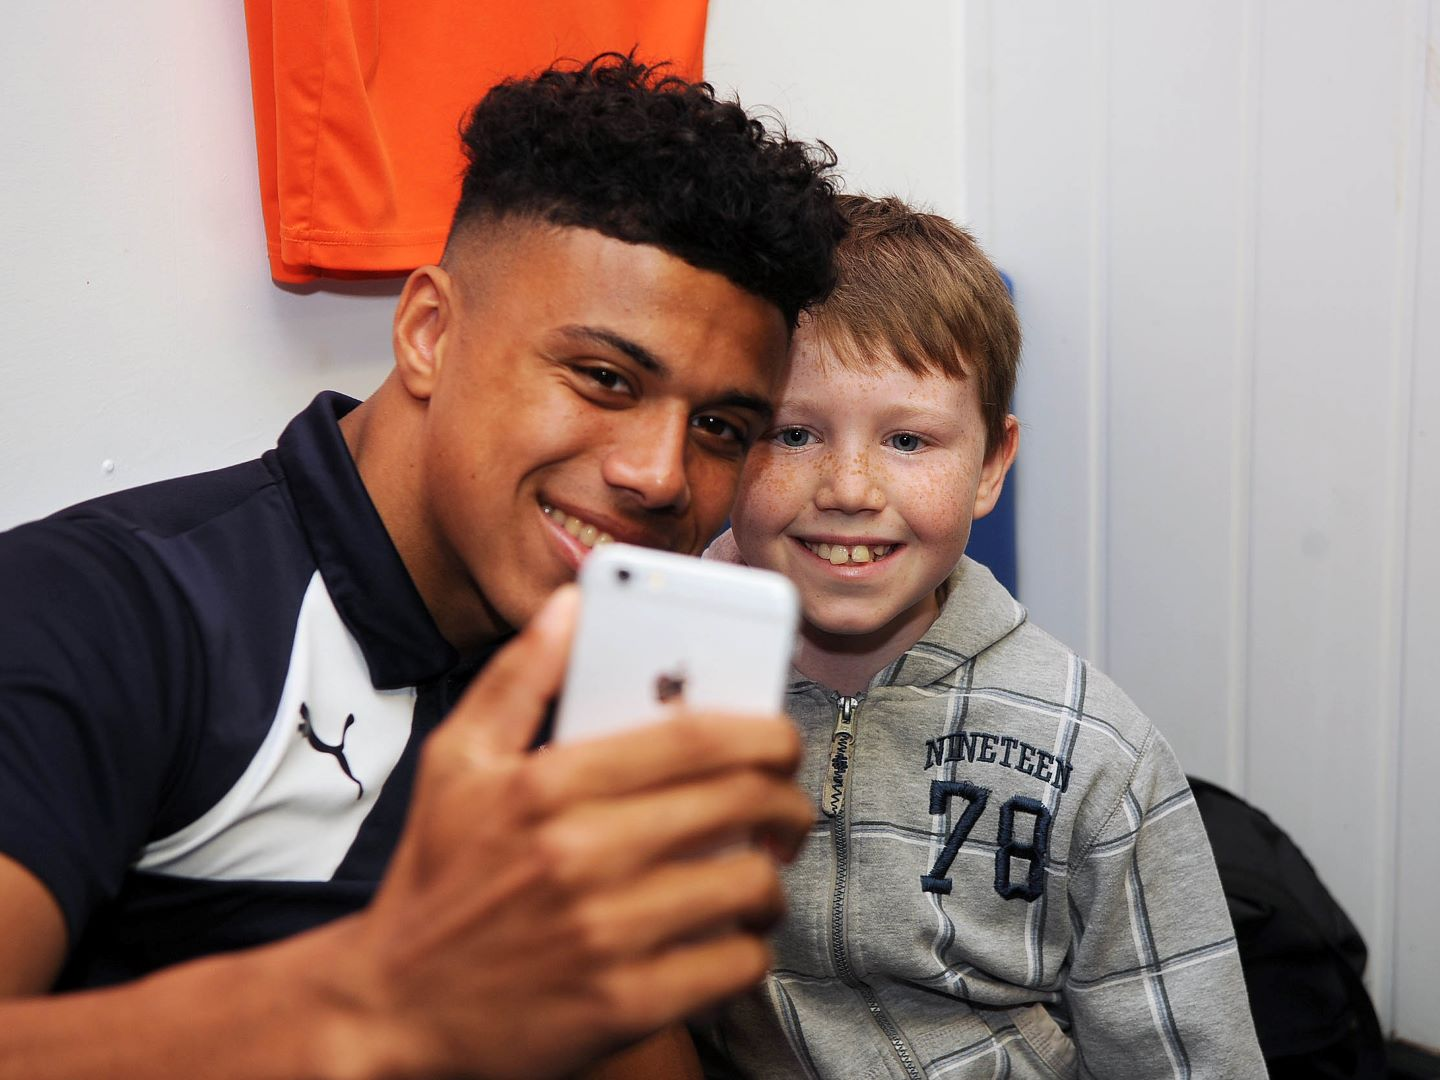 James Justin meets a young fan